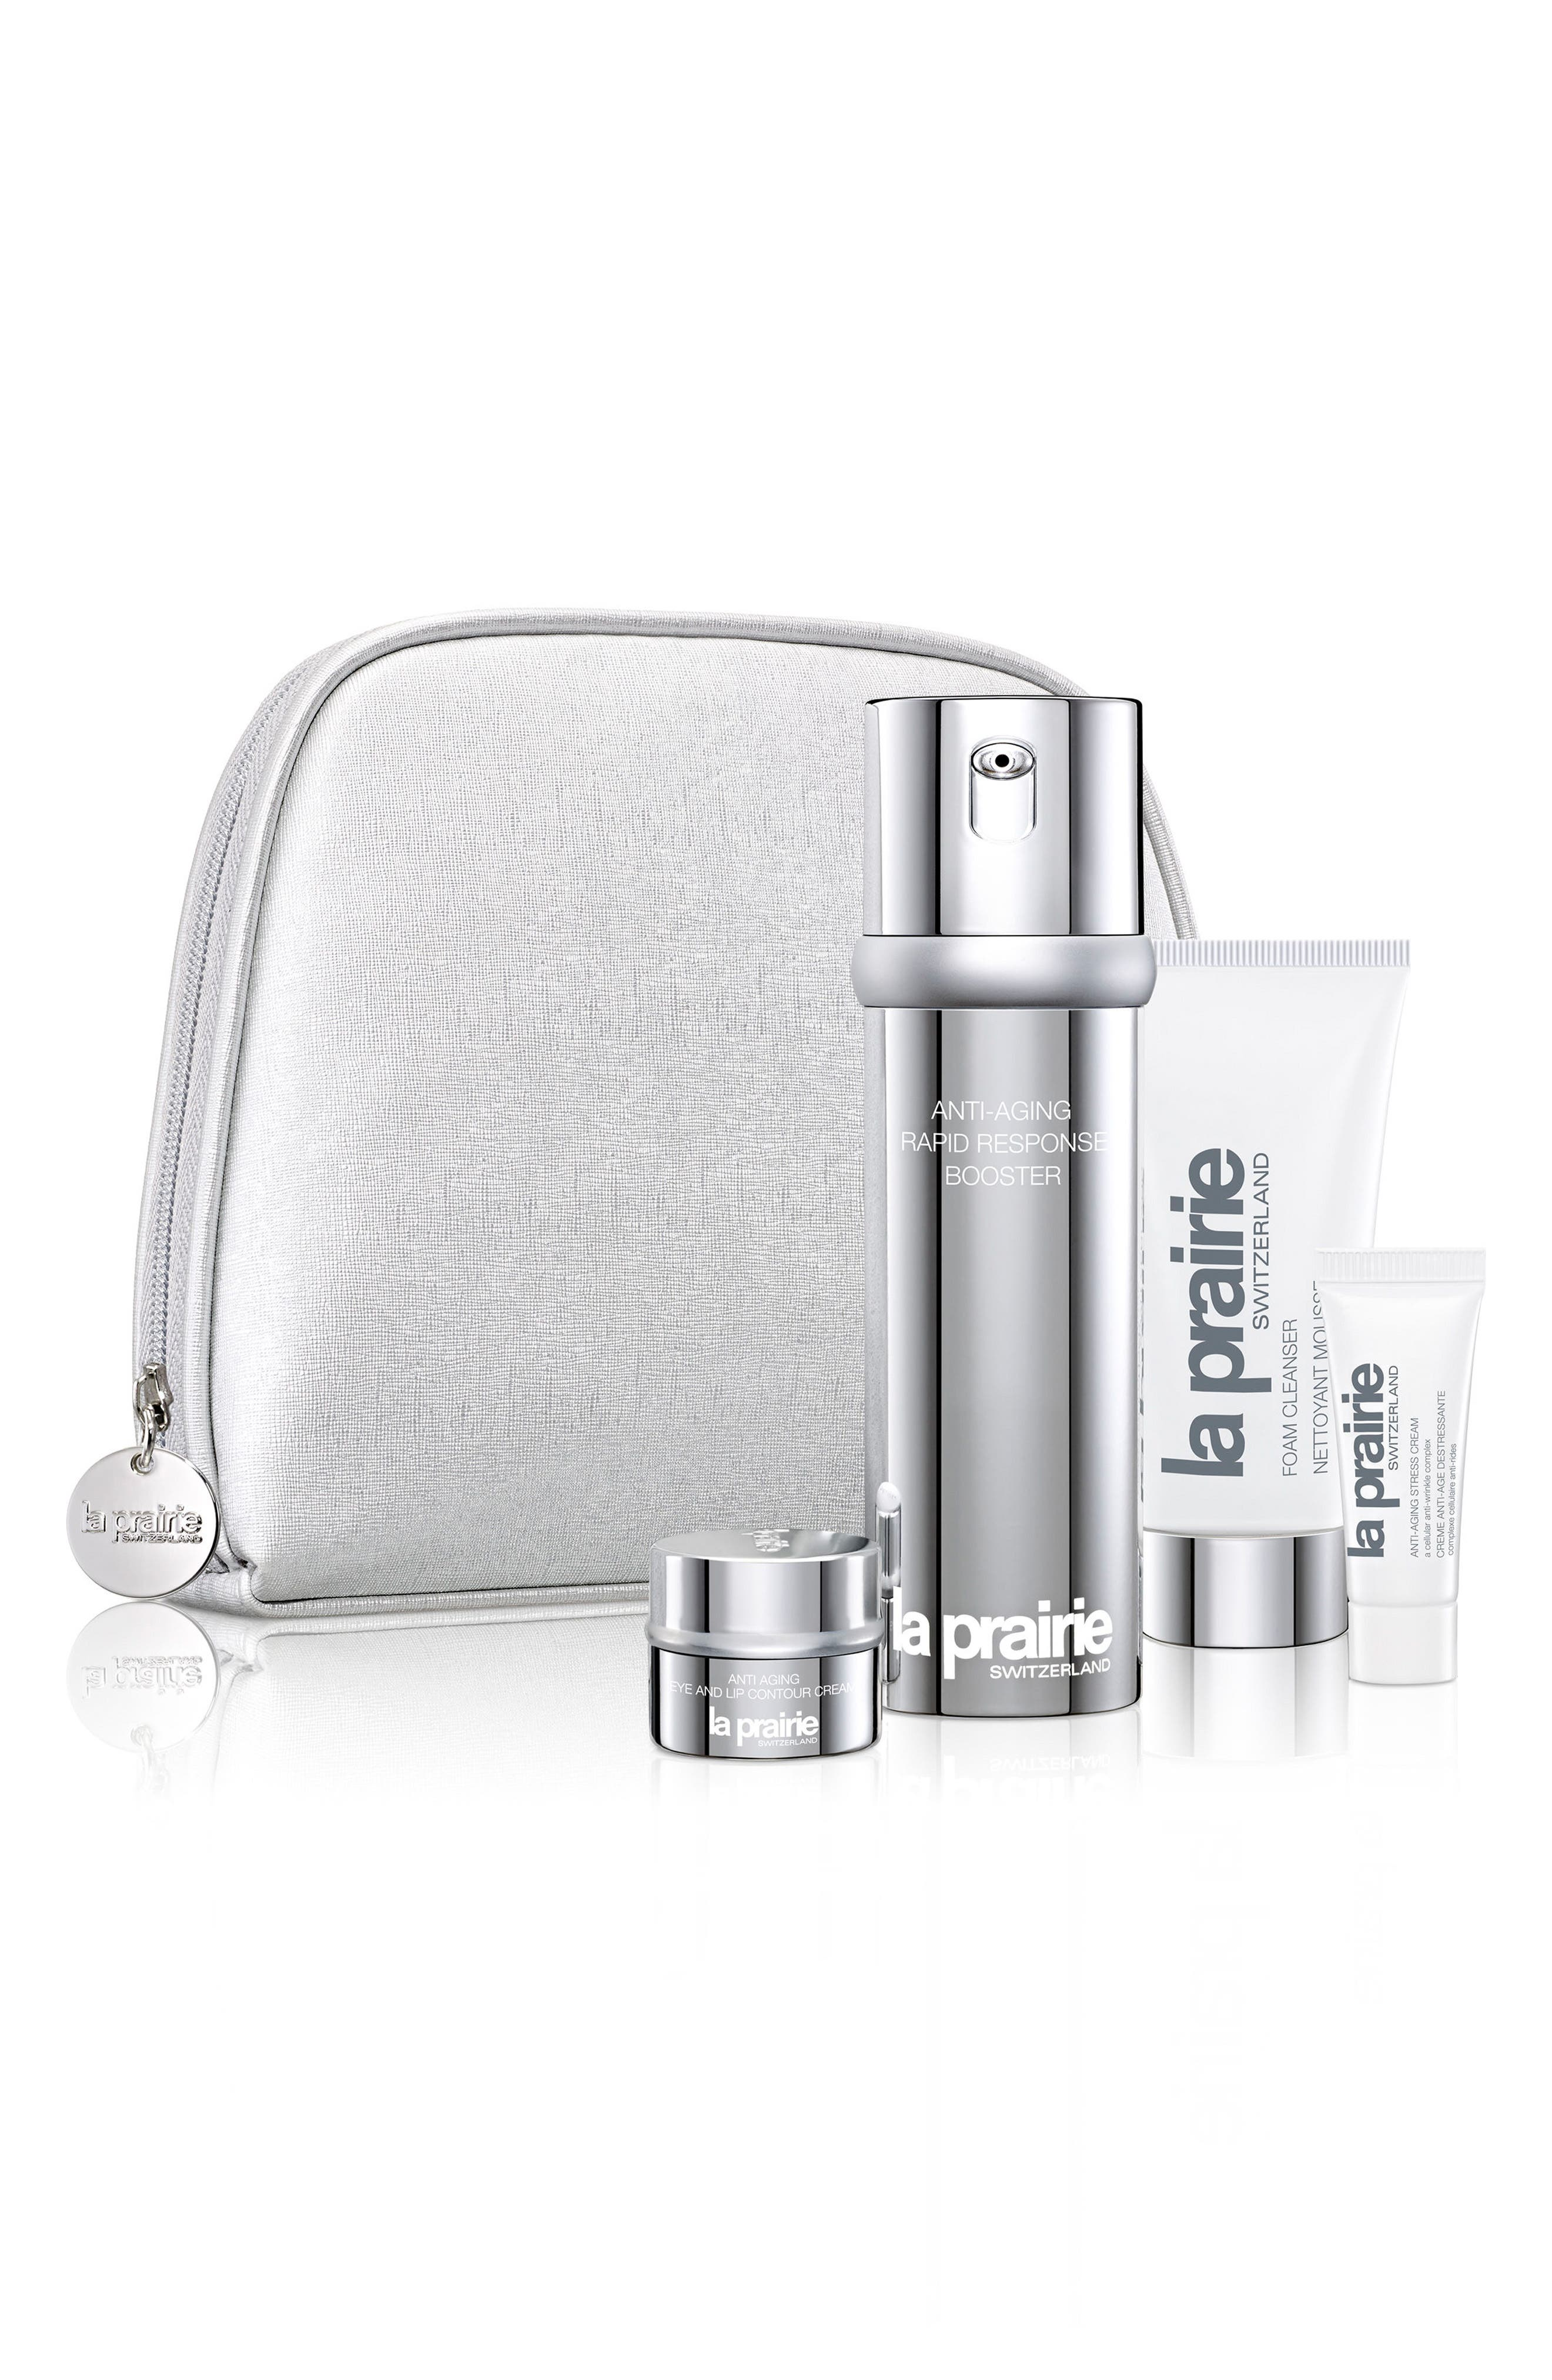 La Prairie Anti-Aging Essentials Set (Limited Edition) ($385 Value)